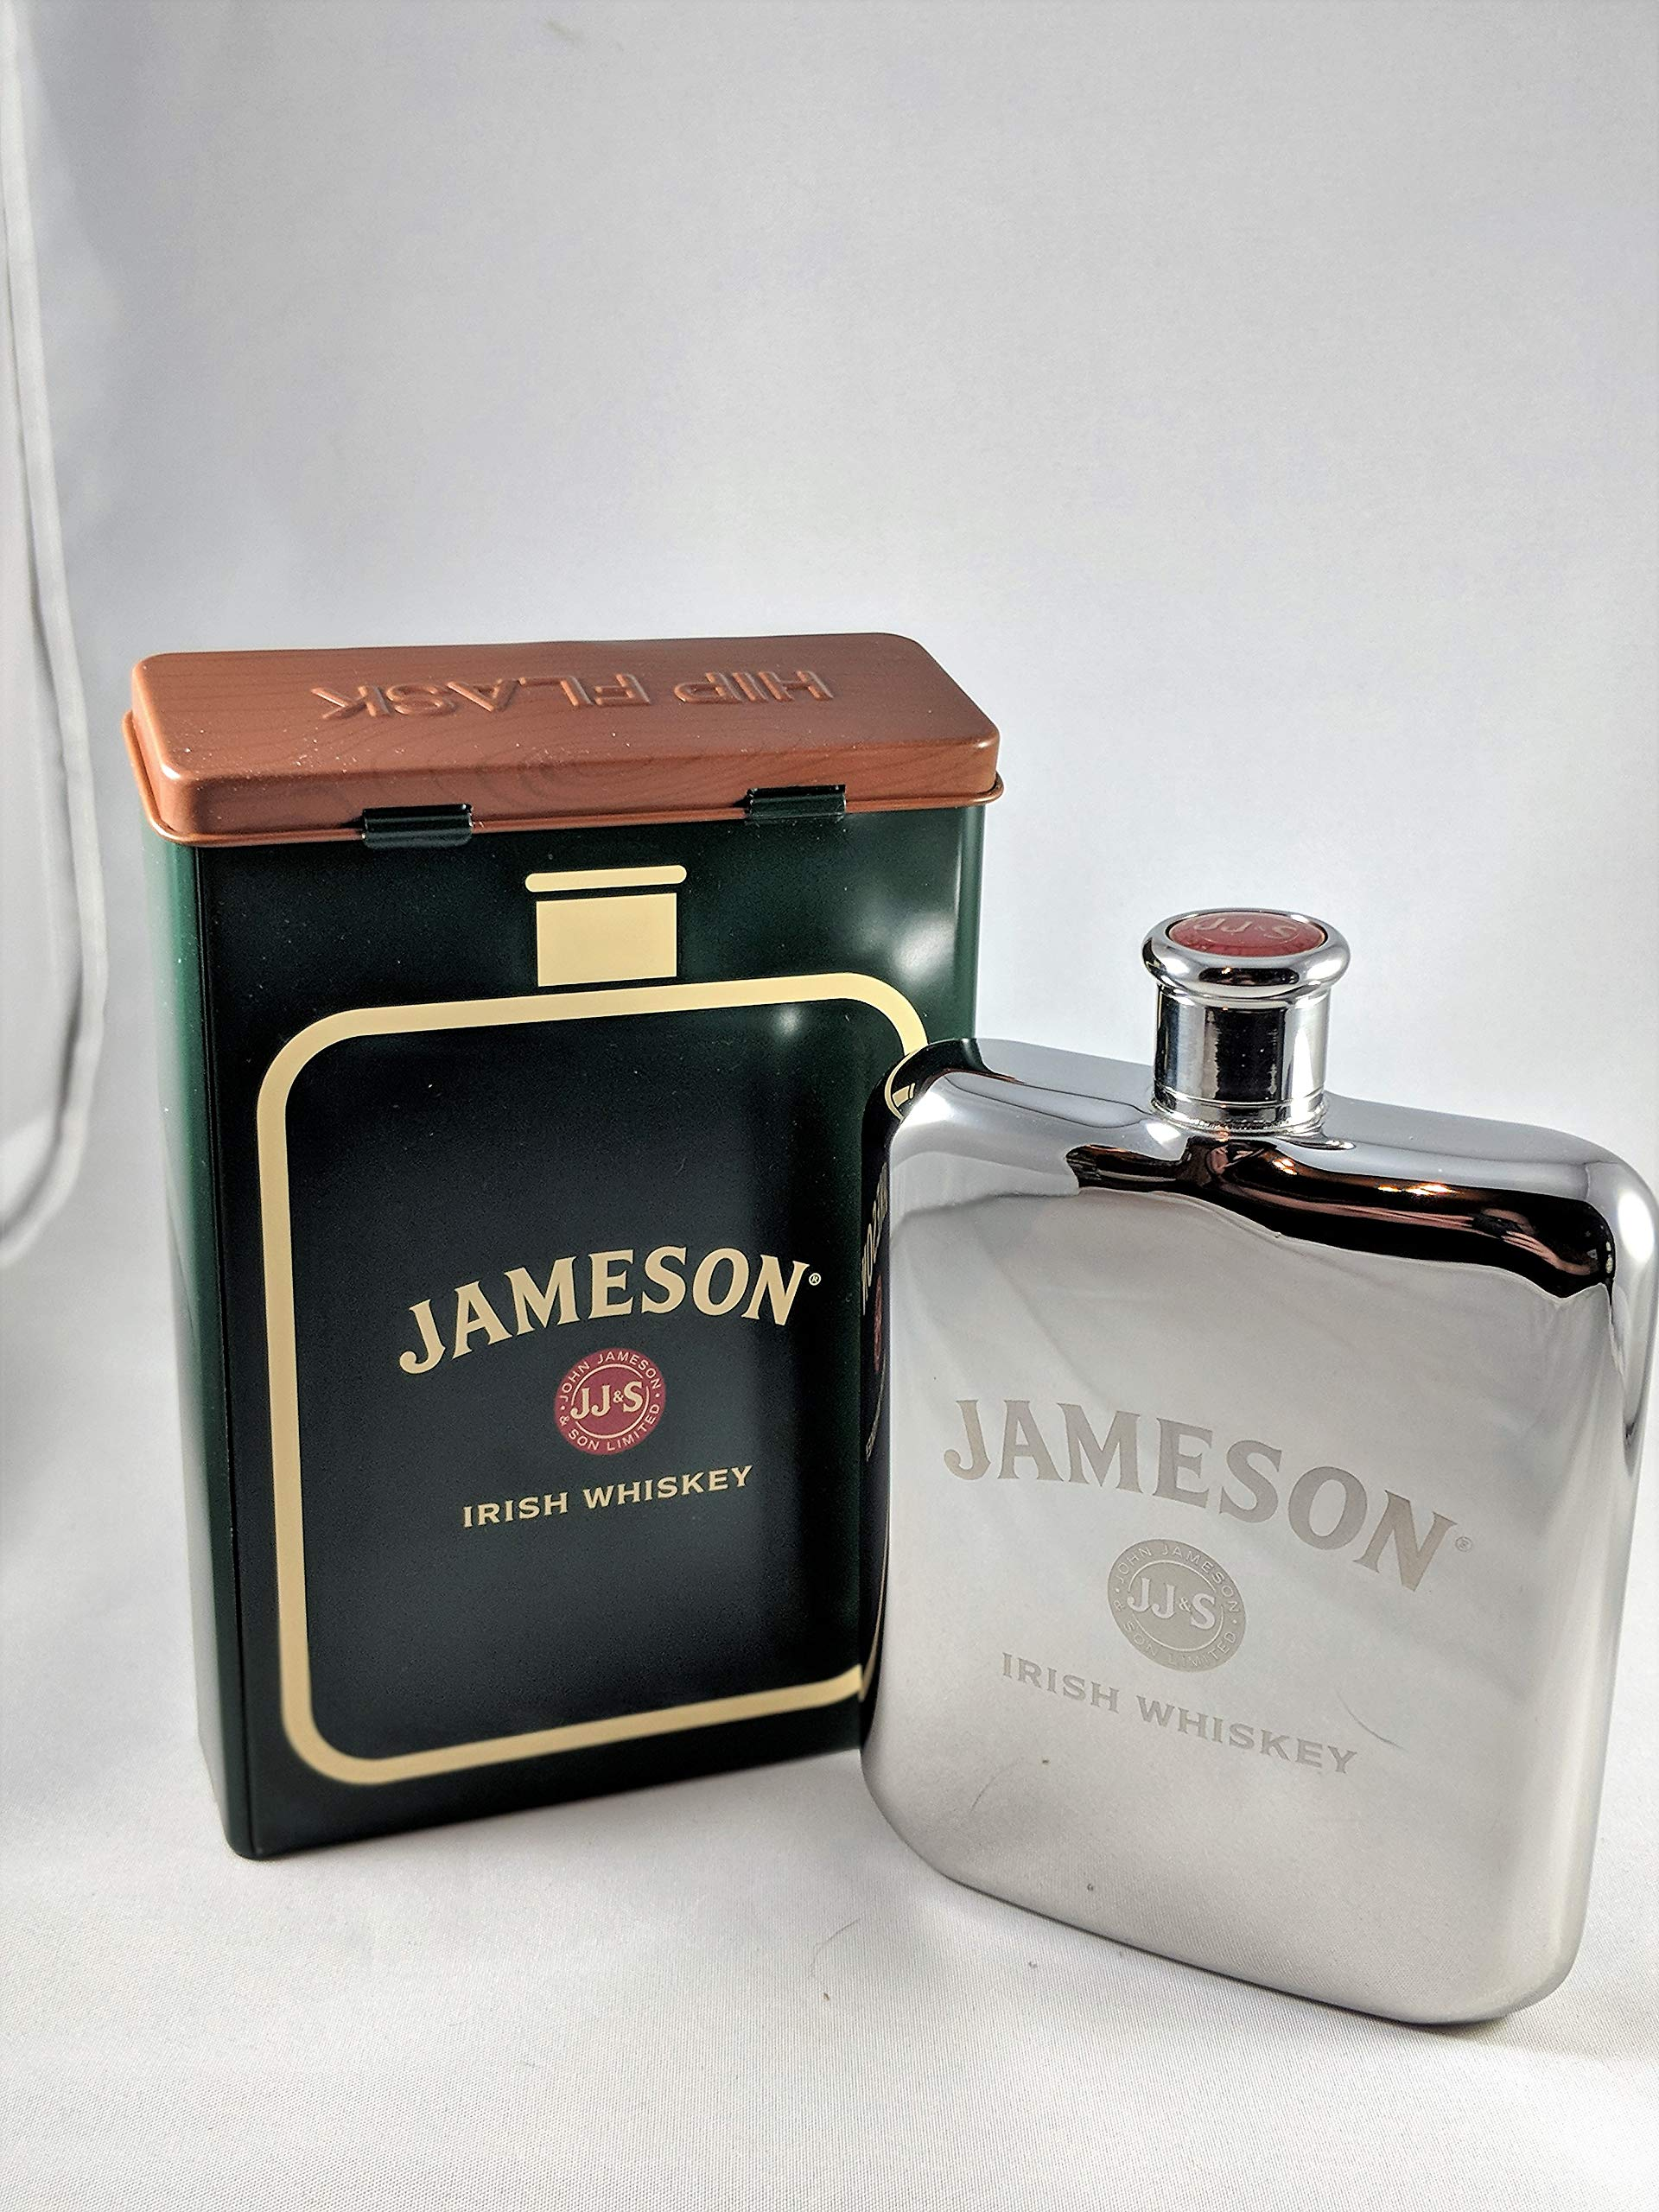 Jameson Irish Whiskey Signature Flask by John Jameson and Sons